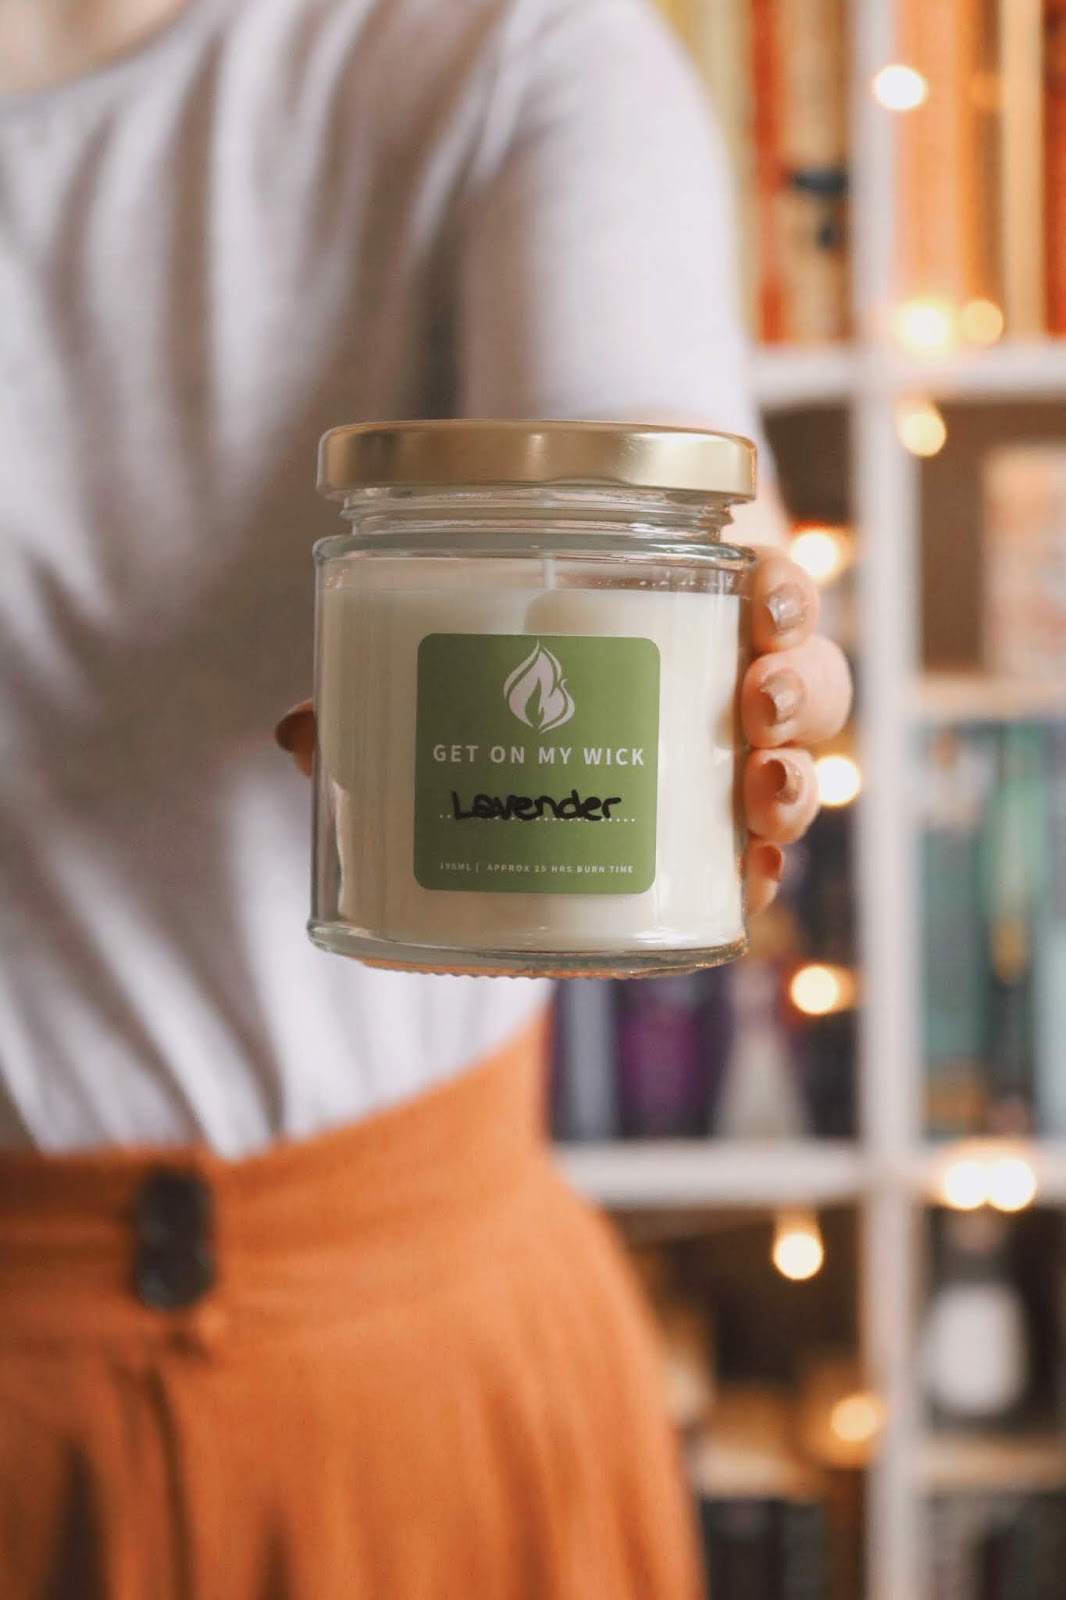 Get On My Wick Lavender Candle